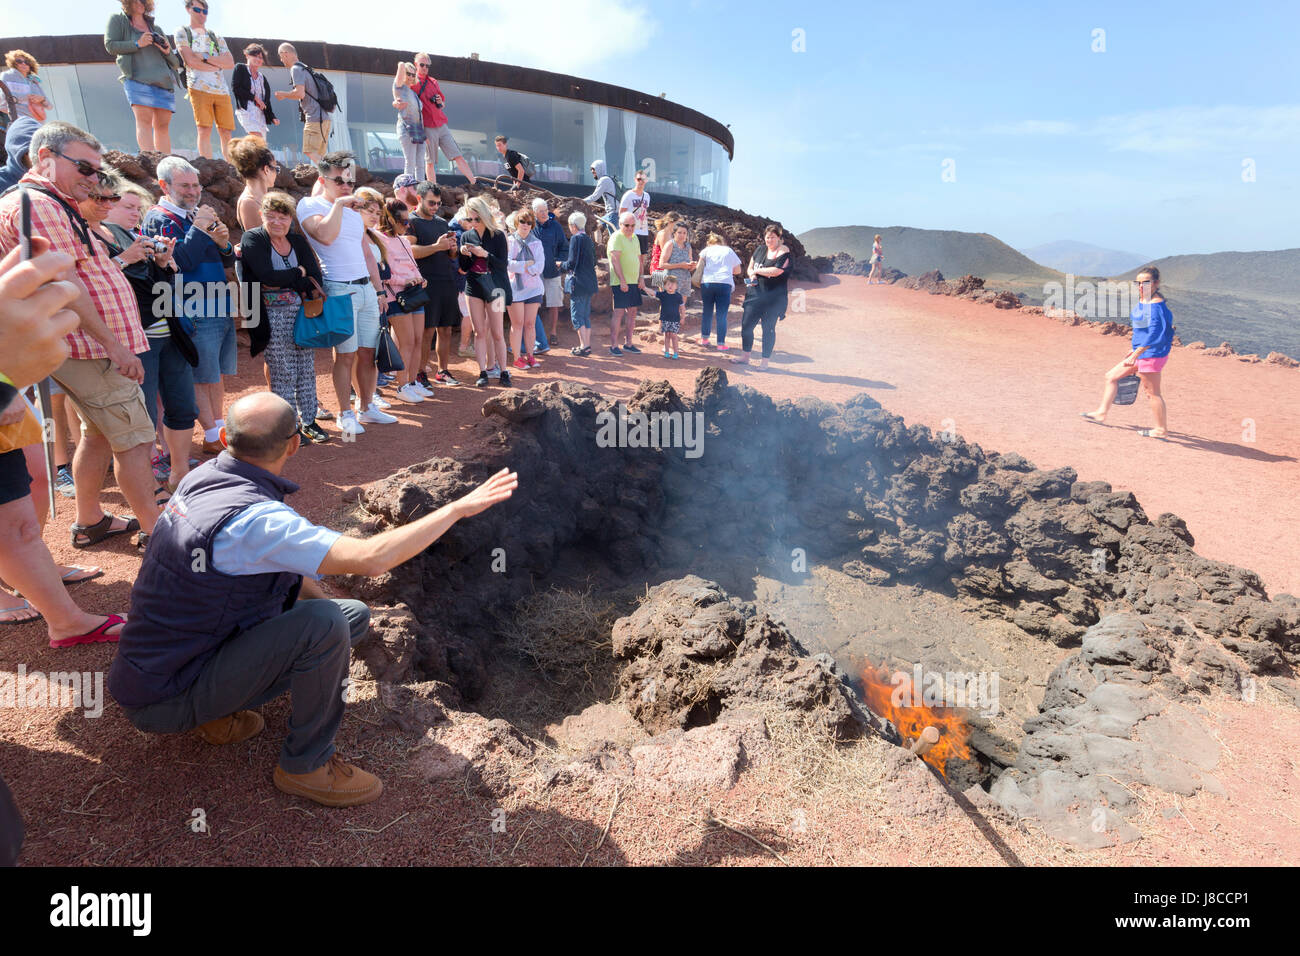 Lanzarote Timanfaya National Park - demonstration of volcanic activity to tourists, Timanfaya National Park, Lanzarote, - Stock Image